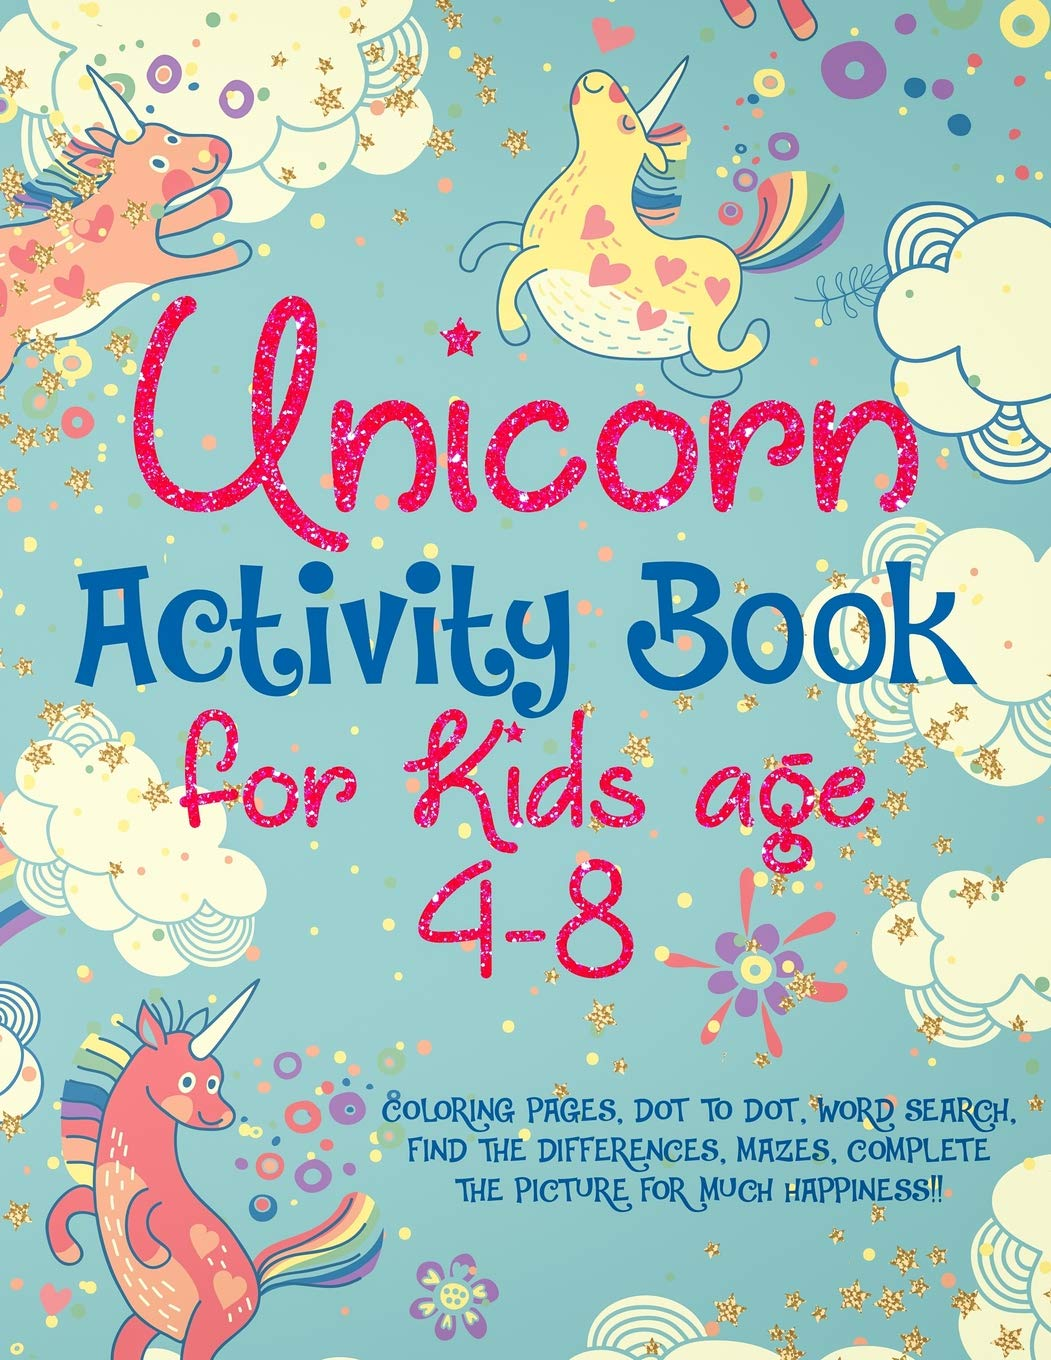 Unicorn Activity Book For Kids Age 4 8 Coloring Pages Dot To Dot